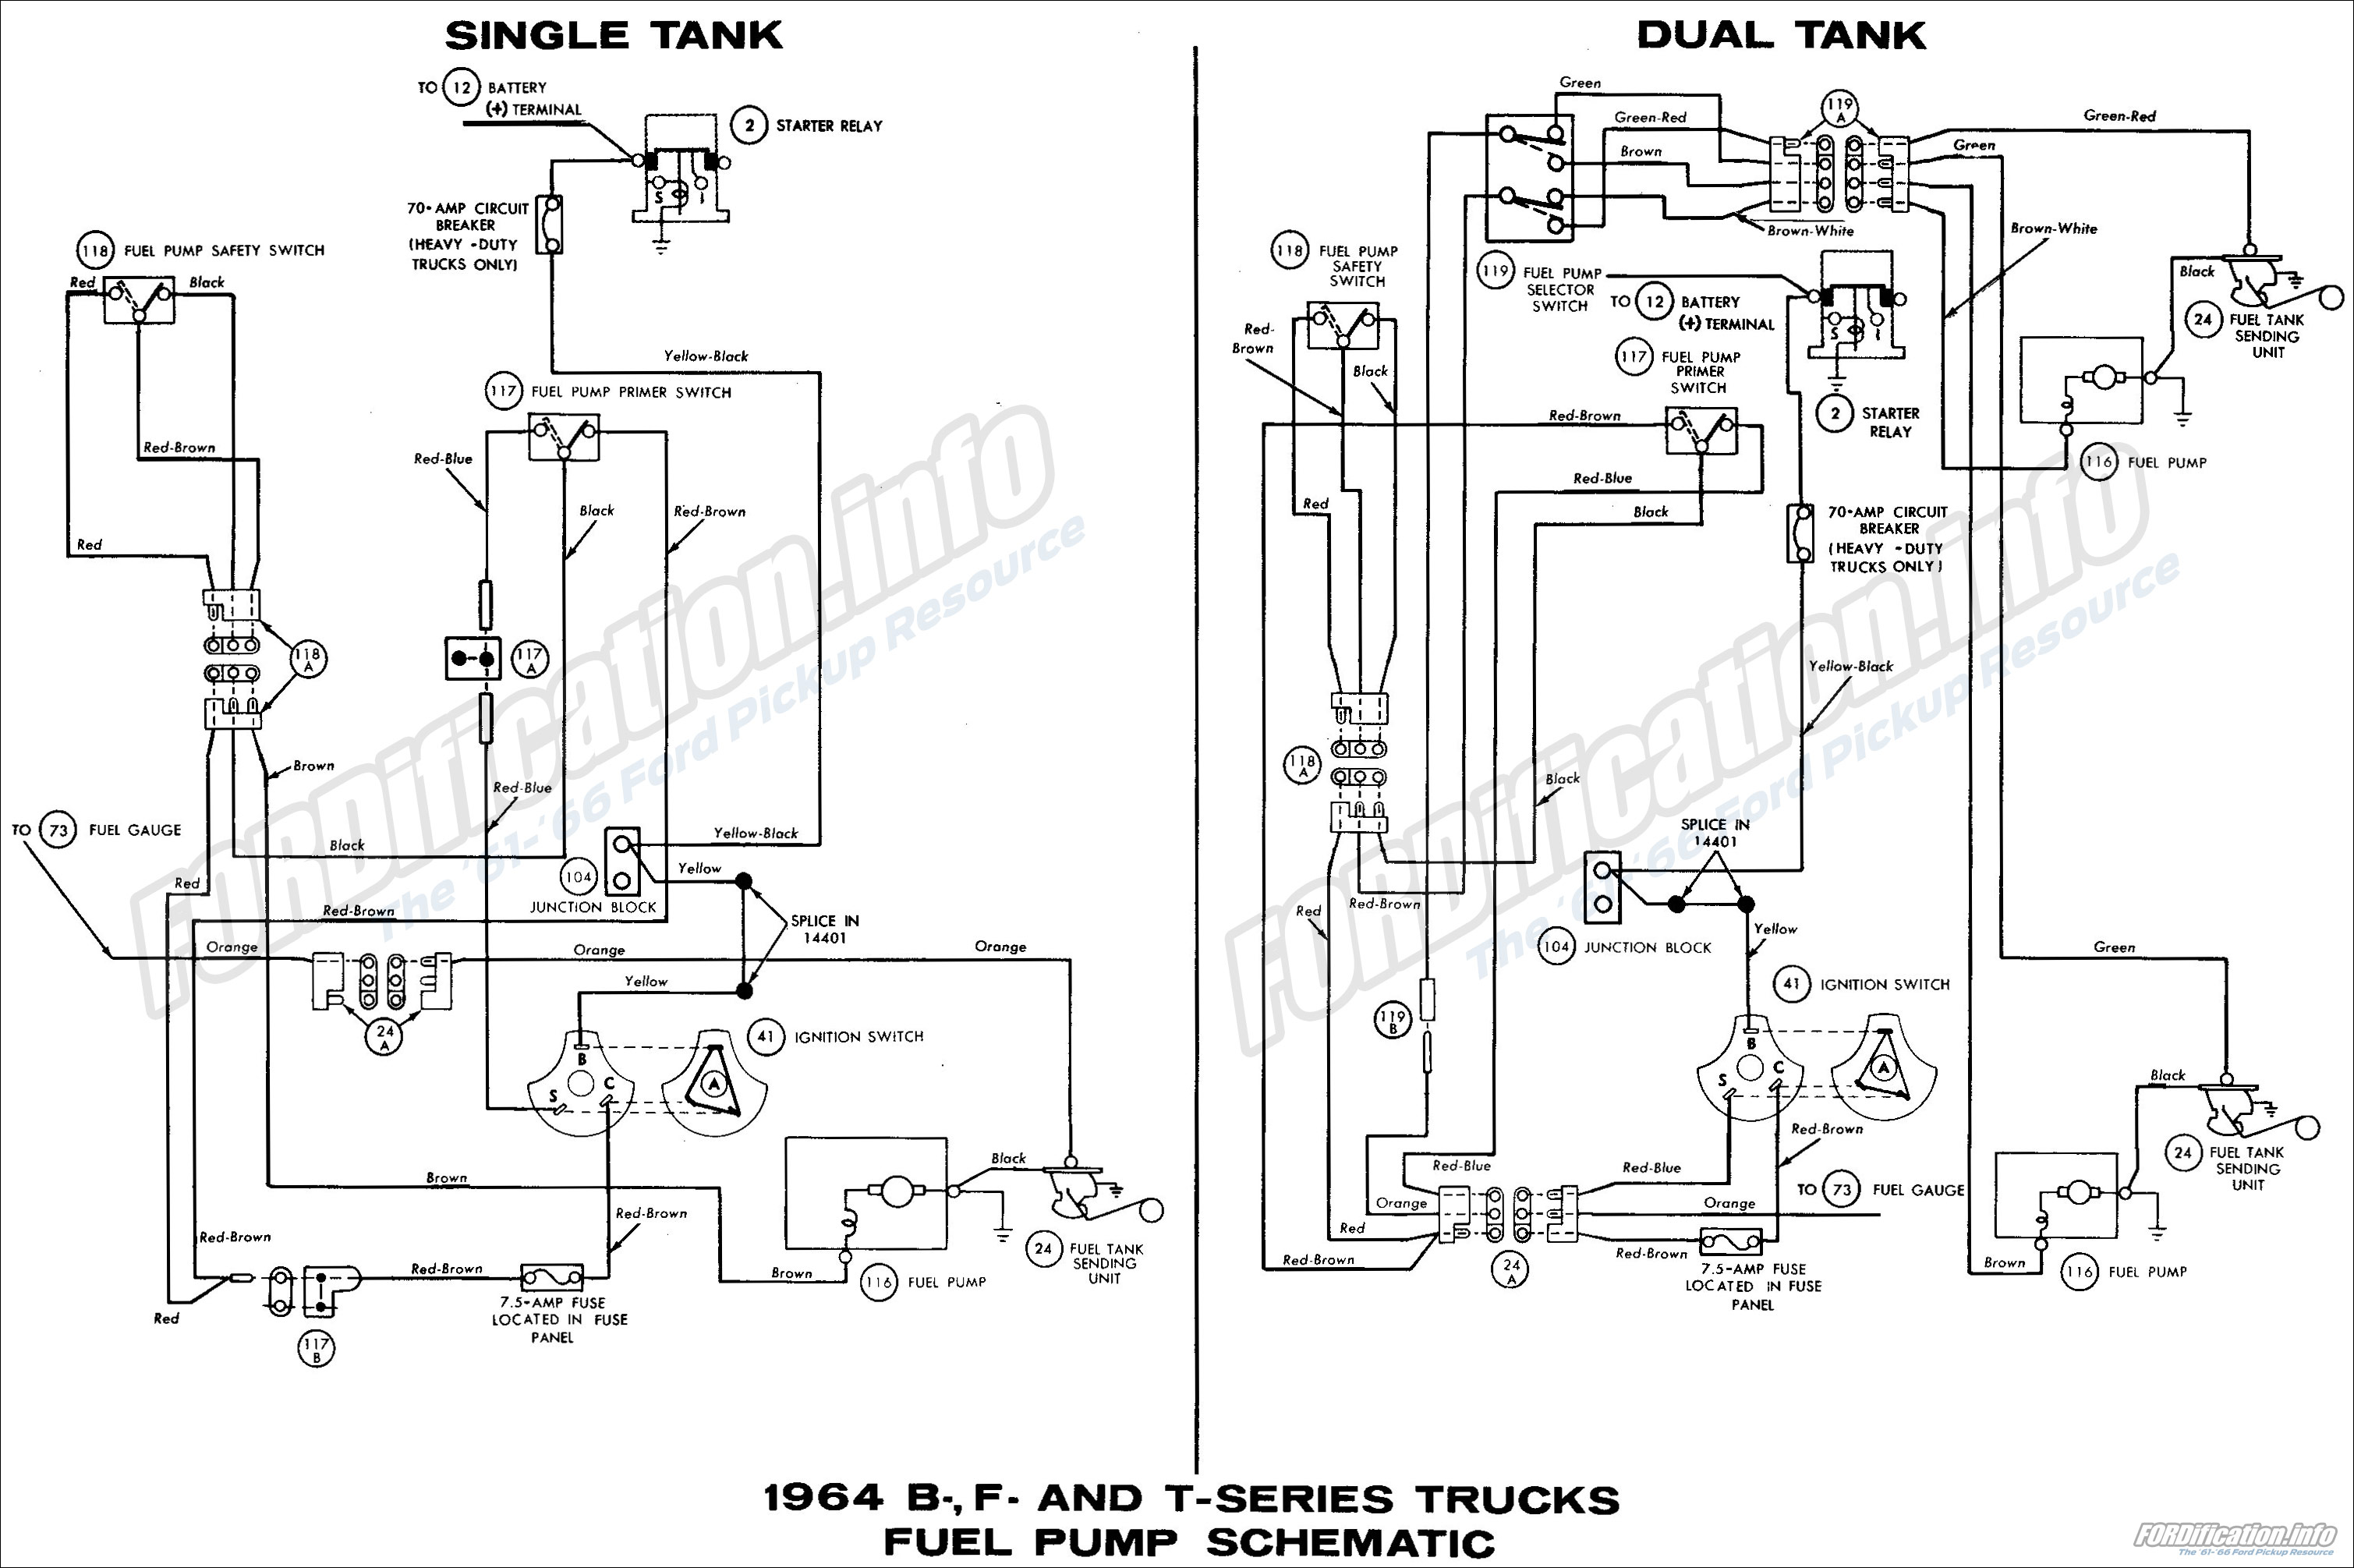 1964 Ford Ignition Switch Wiring Diagram Wire Data Schema Truck Diagrams Fordification Info The 61 66 Rh Coil